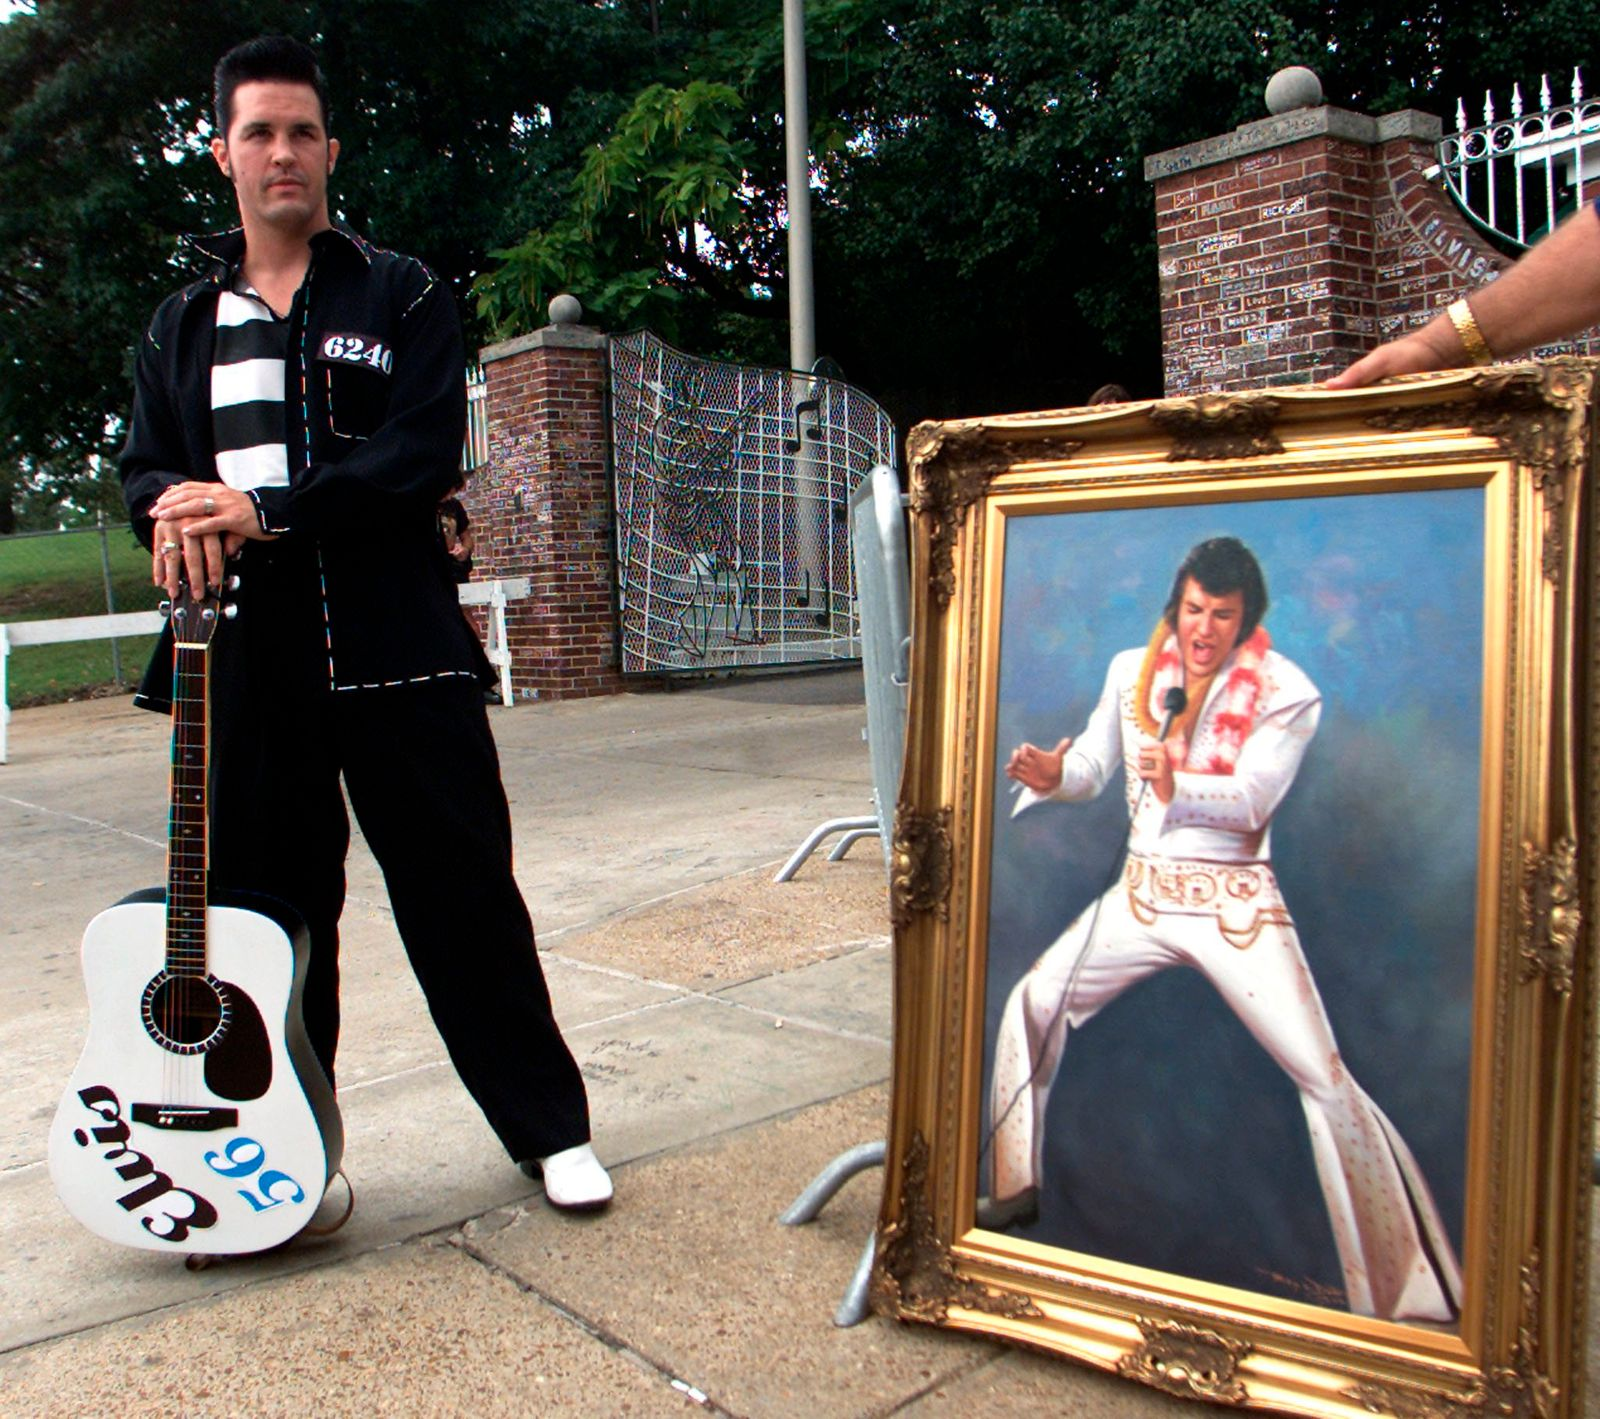 An Elvis Presley fan Randall Houser of Cincinnatti, Ohio stands near a painting of Presley, in front of the gate of the Presley's Graceland home in Memphis, Tennessee